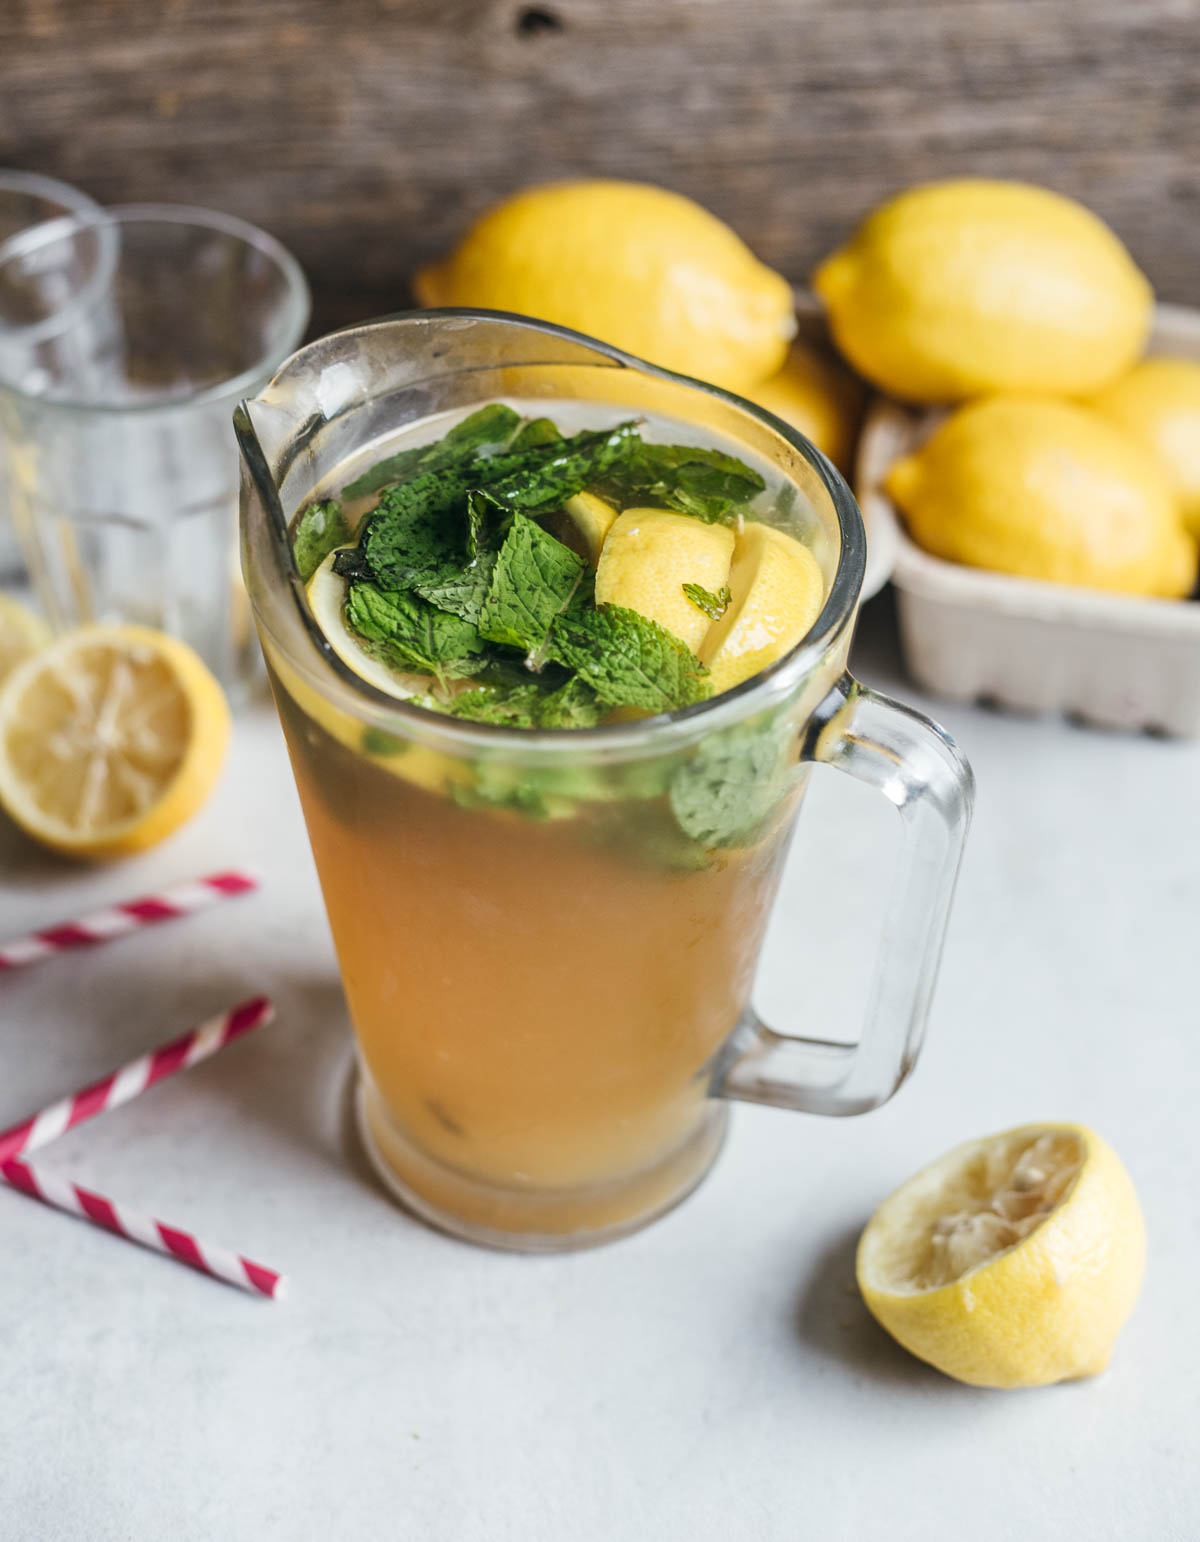 Mint leaves dipped in a glass pitcher of lemonade